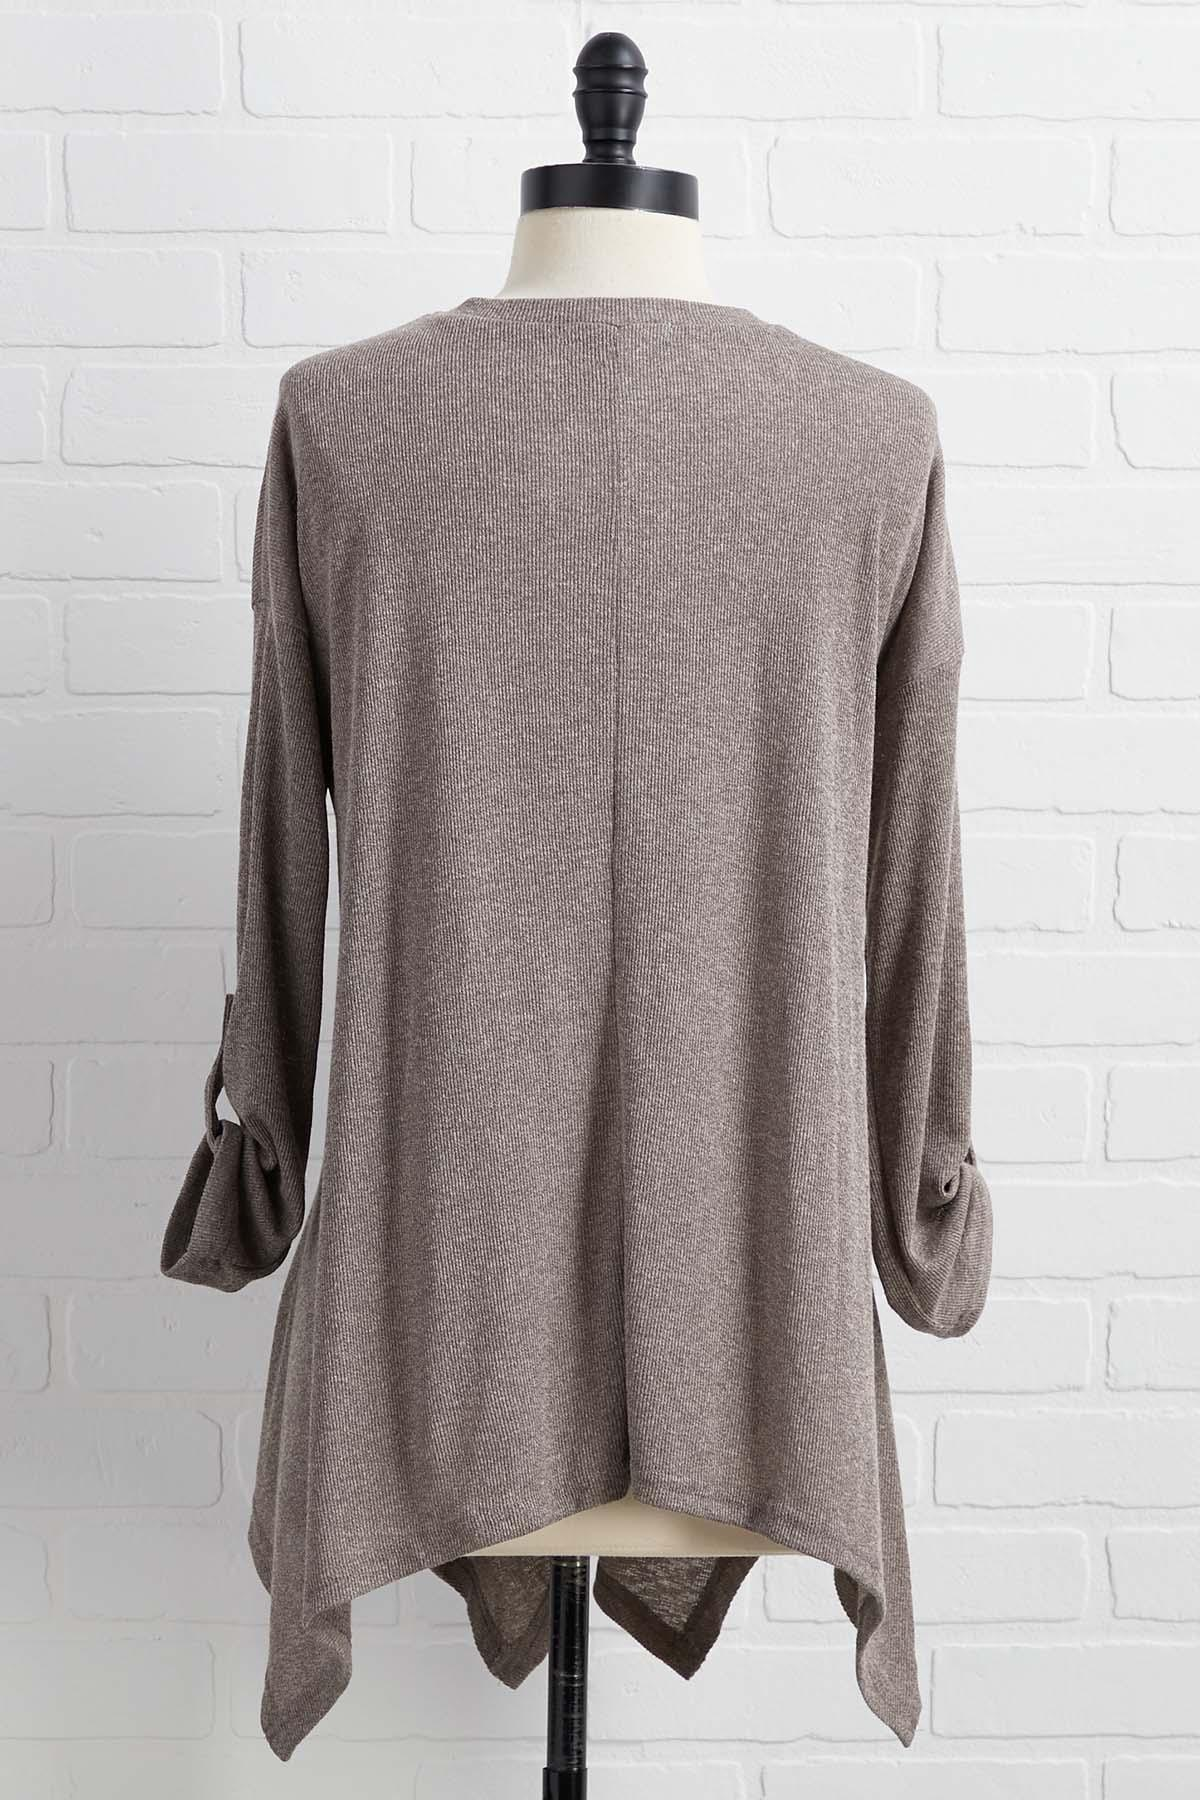 Room For Tunic Top